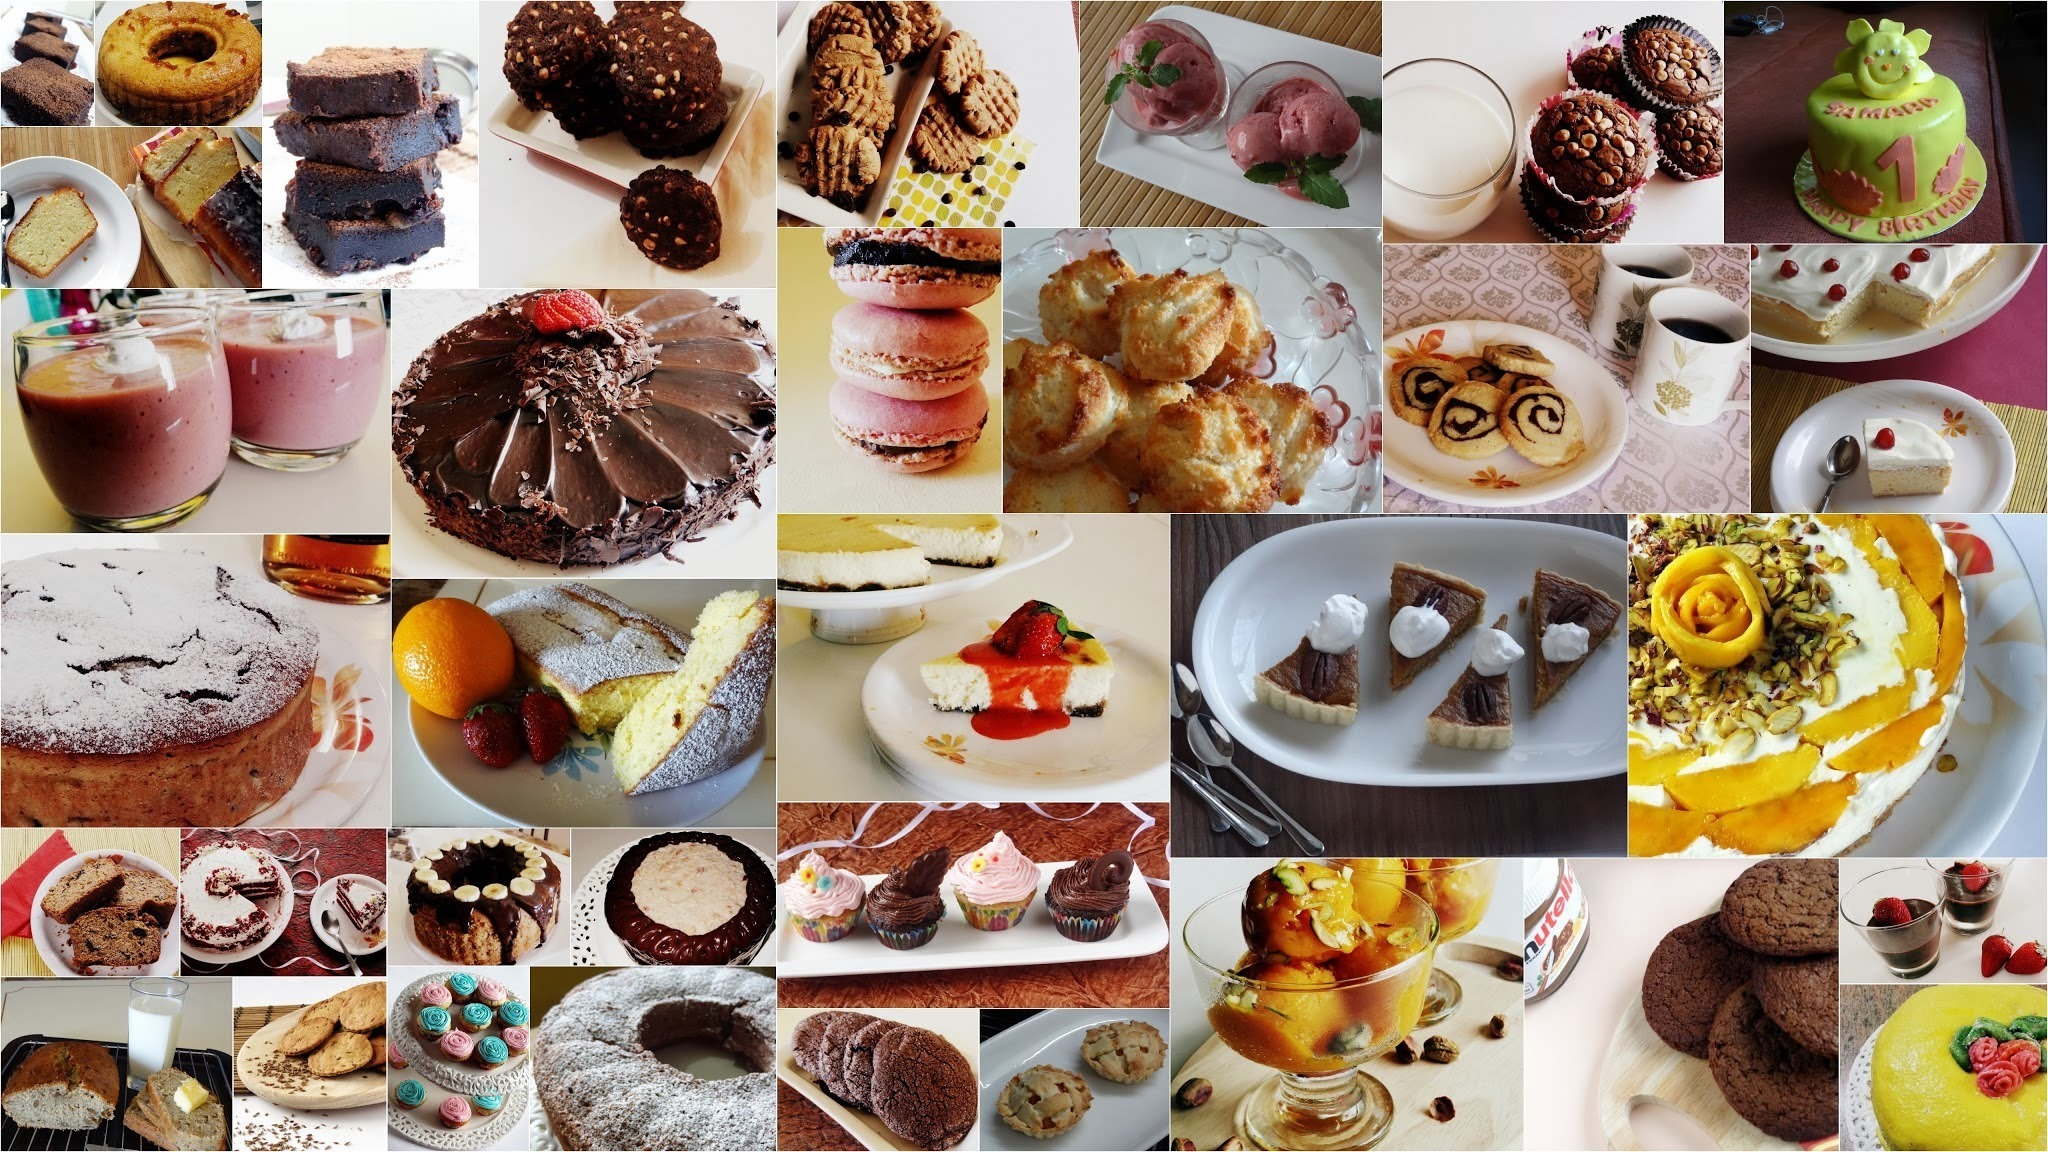 Best of Soniaz Delights 2013 - Top 10 Most Popular Recipes in 2013